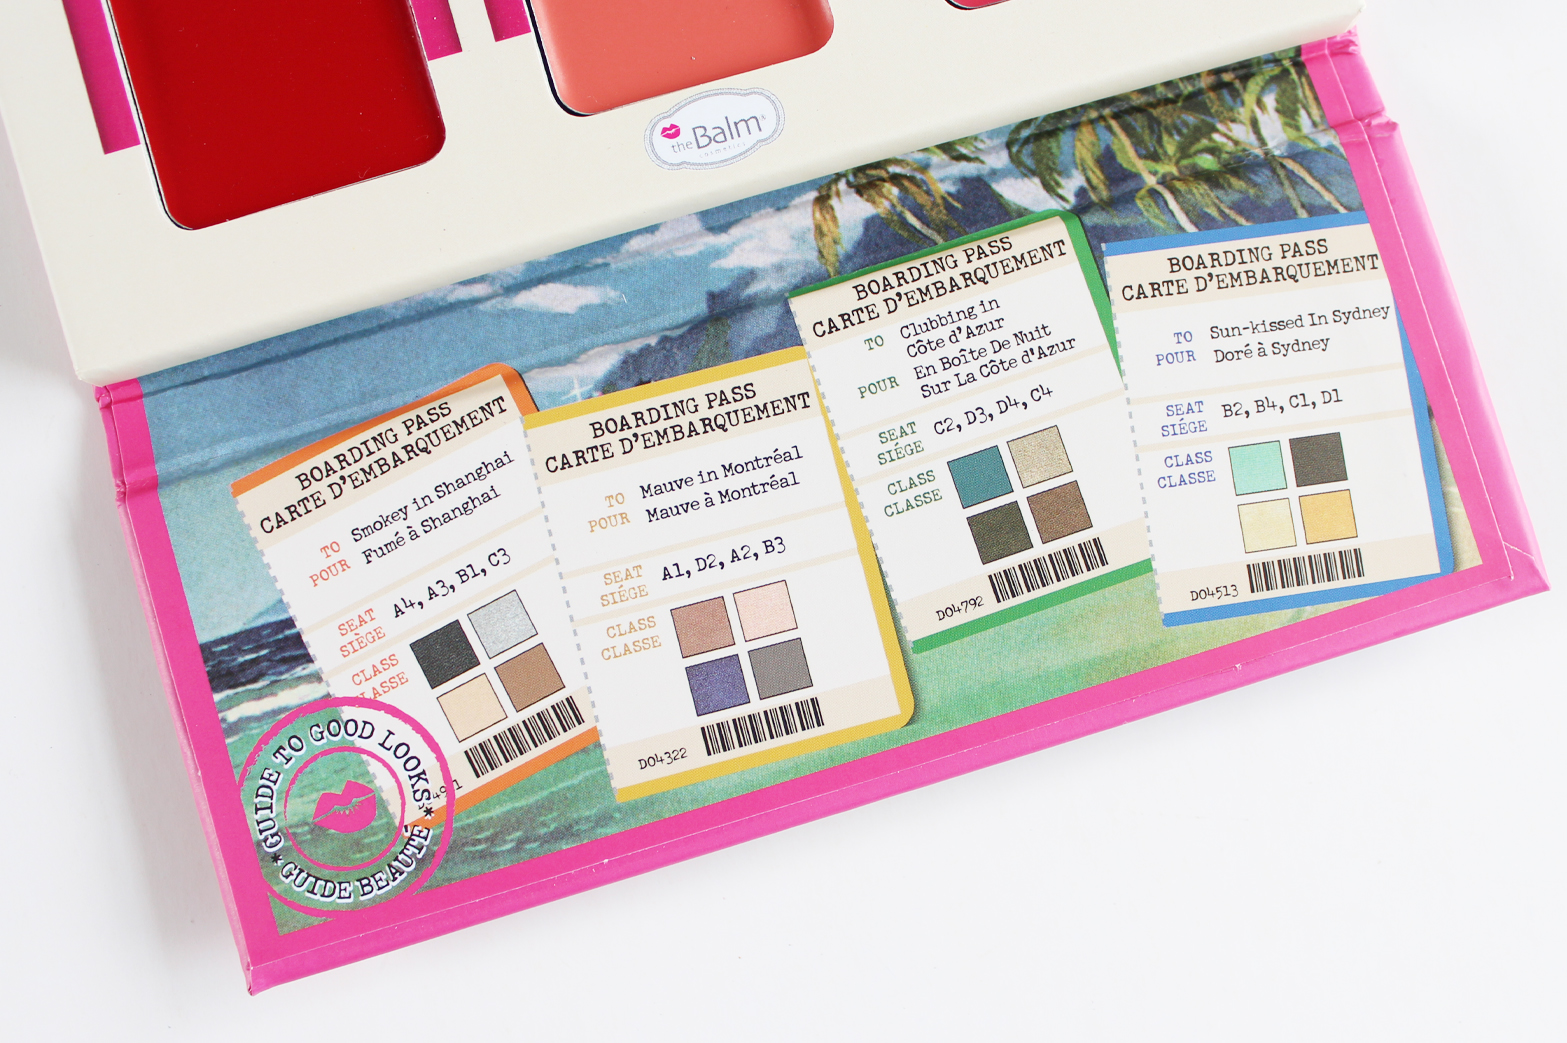 THEBALM | Balm Voyage! Eyeshadow, Lip + Cheek Stain Palette - Review + Swatches - CassandraMyee